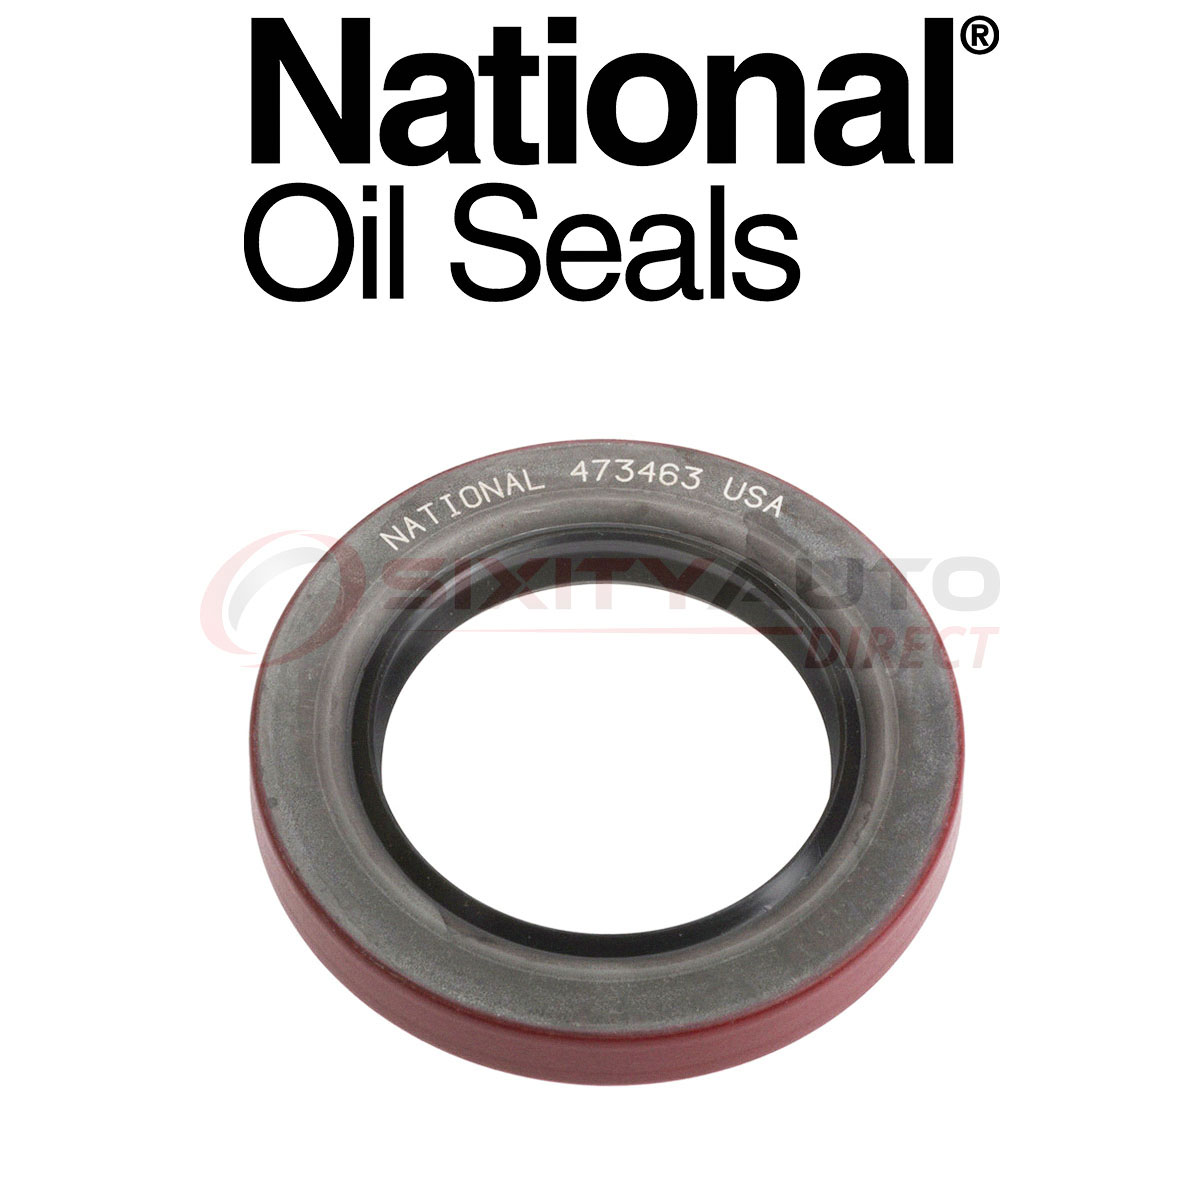 Transfer Case Output Shaft Seal fits 2003-2014 Nissan Murano  NATIONAL SEALS